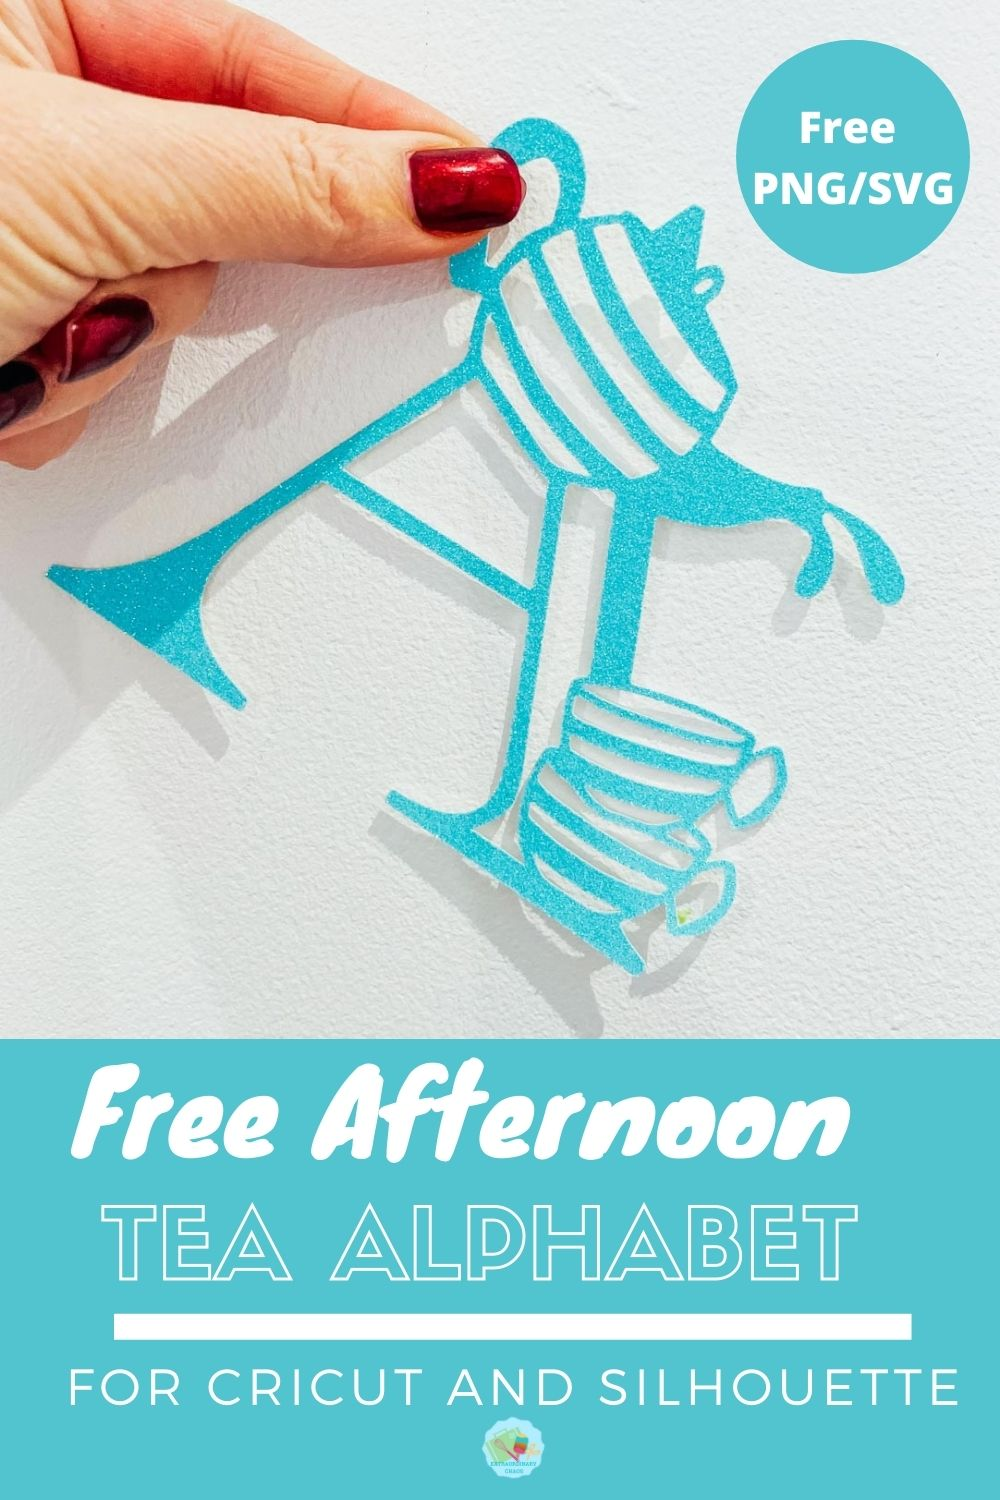 Free Afternoon Tea Alphabet SVG for Cricut And Silhouette